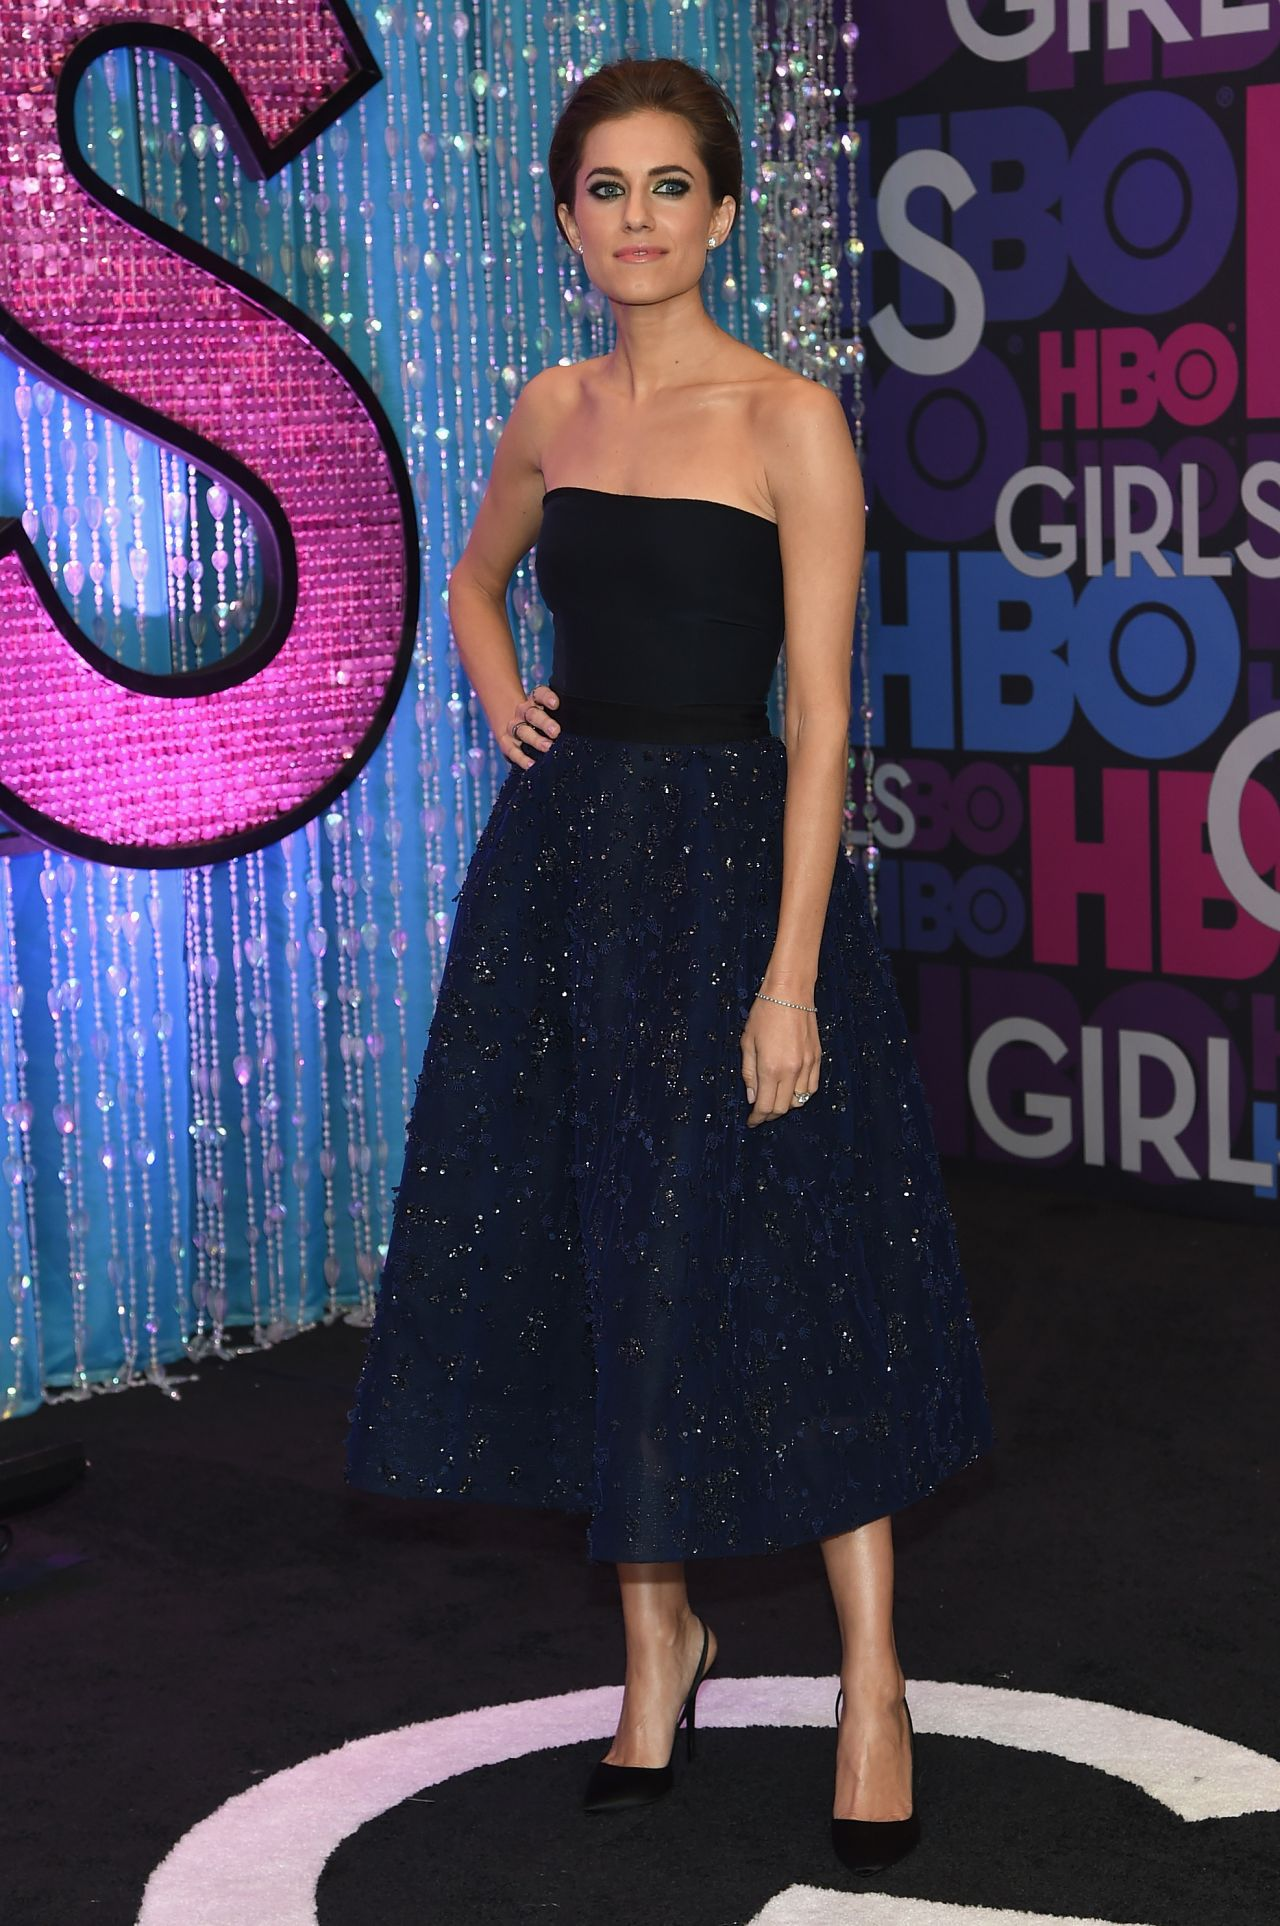 allison-williams-monique-lhuillier-girls-season-four-premiere/